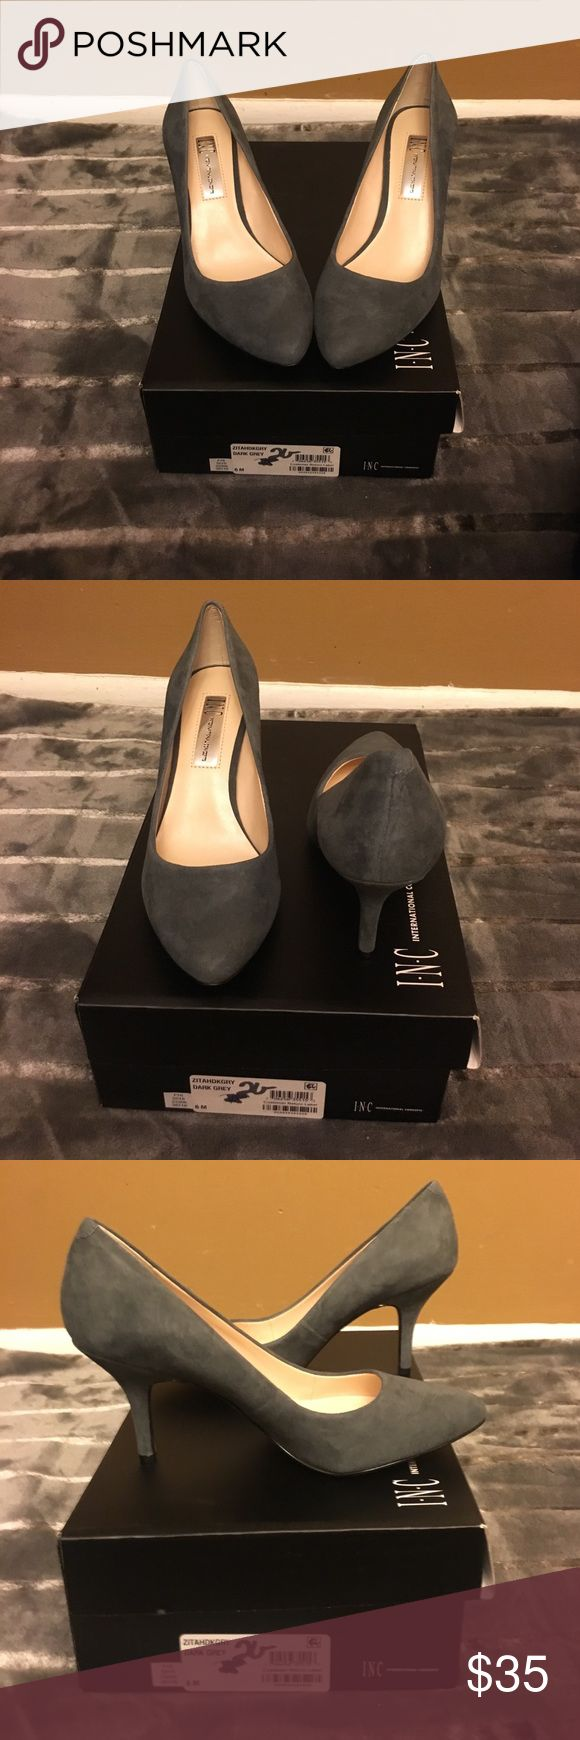 INC heels, gray, size 6 and 6.5 and 8 Brand-new, in box inc gray heels size 6. 6.5, 8 INC International Concepts Shoes Heels